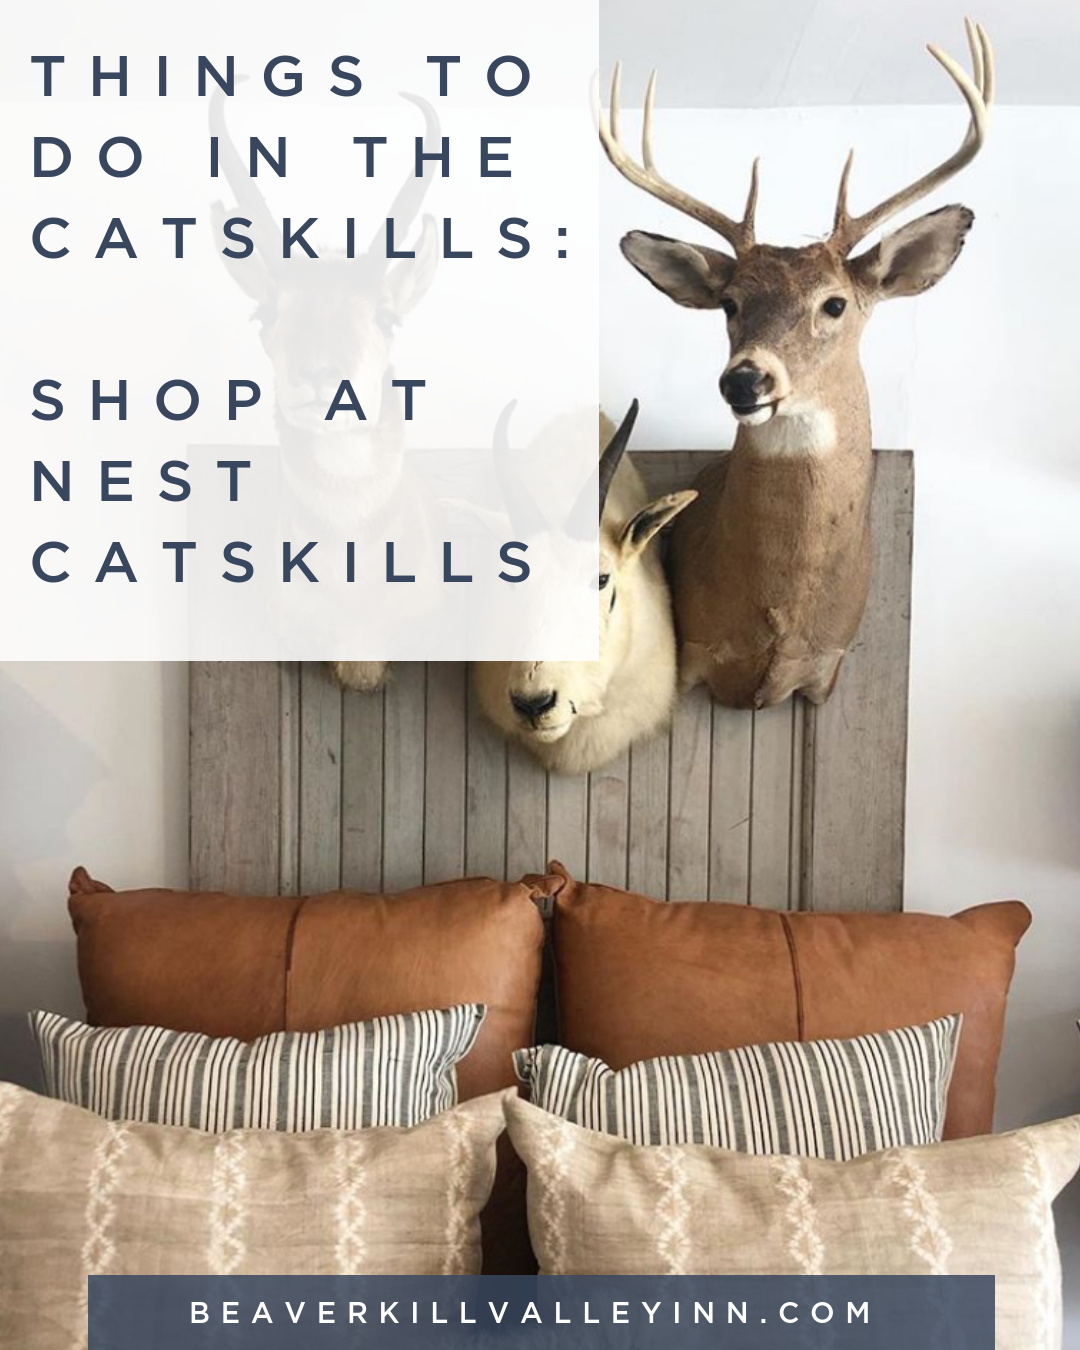 Best Shopping in the Catskills